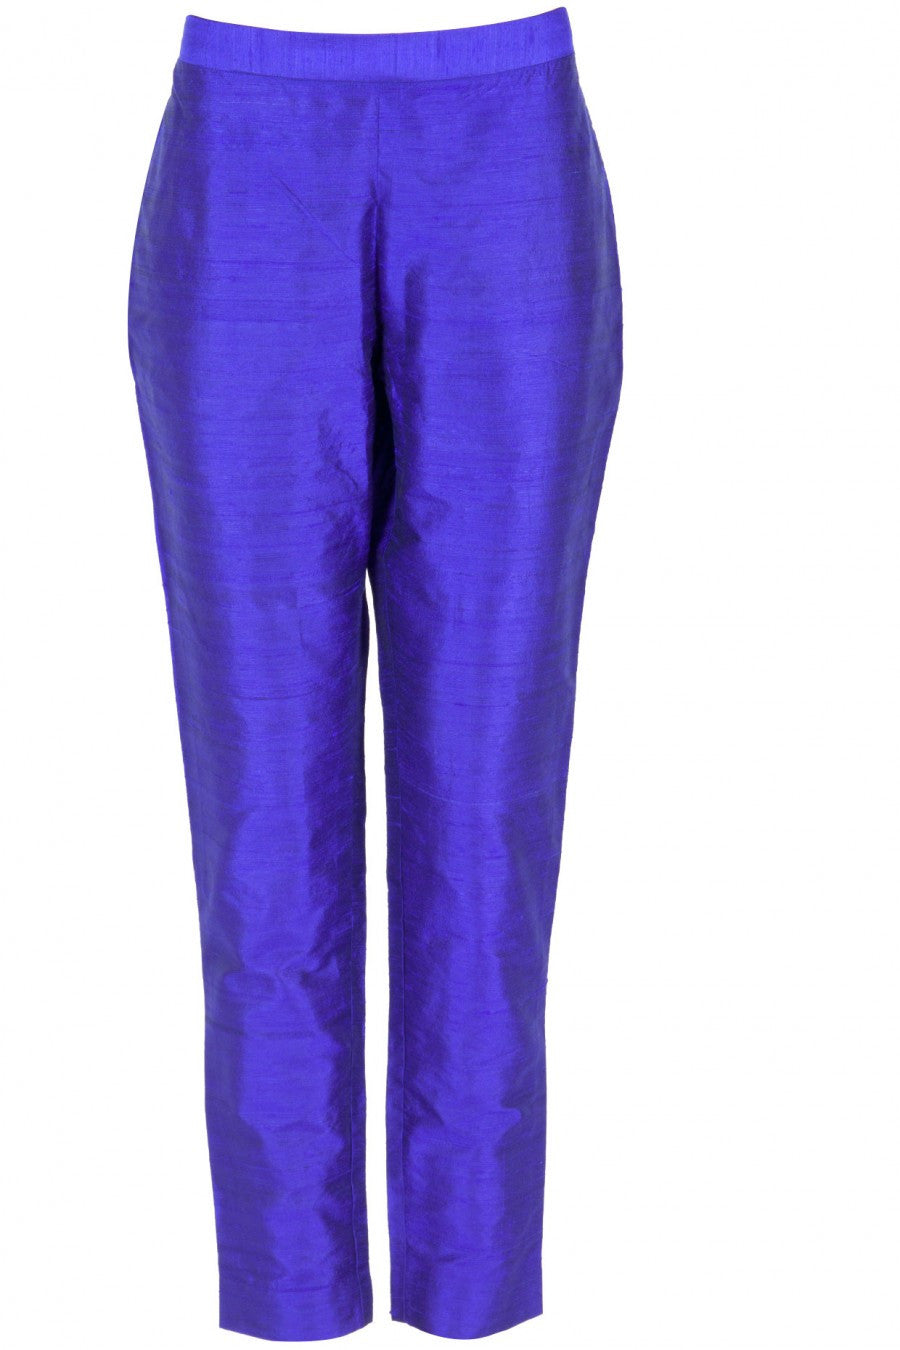 Royal blue color designer trouser suit